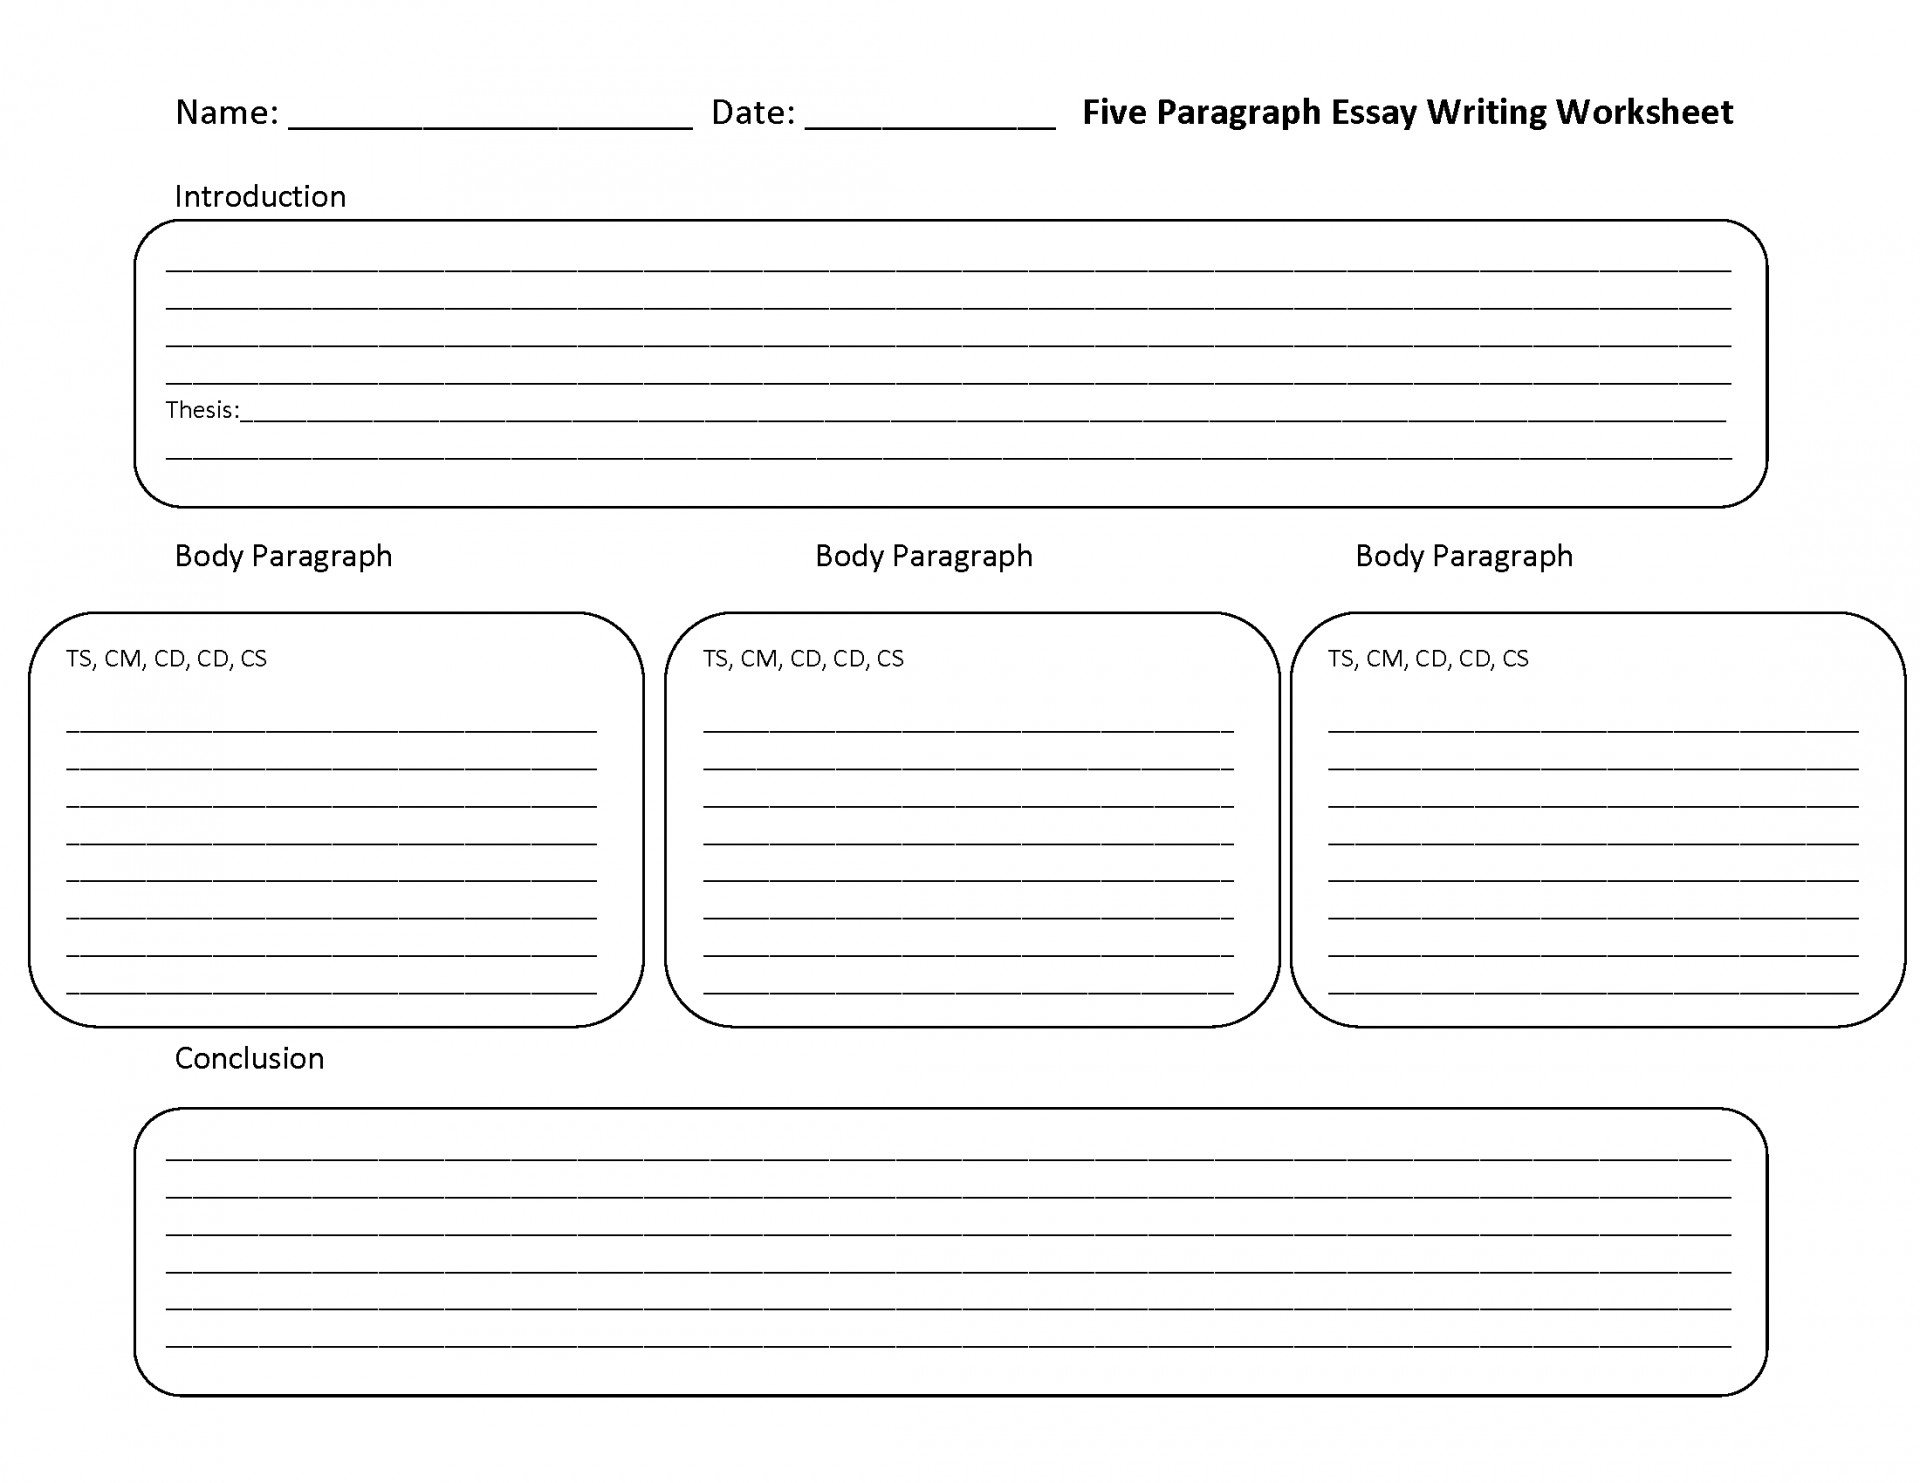 005 Five Paragraph Essay Lines Outline Template Fearsome 5 Persuasive Free 1920